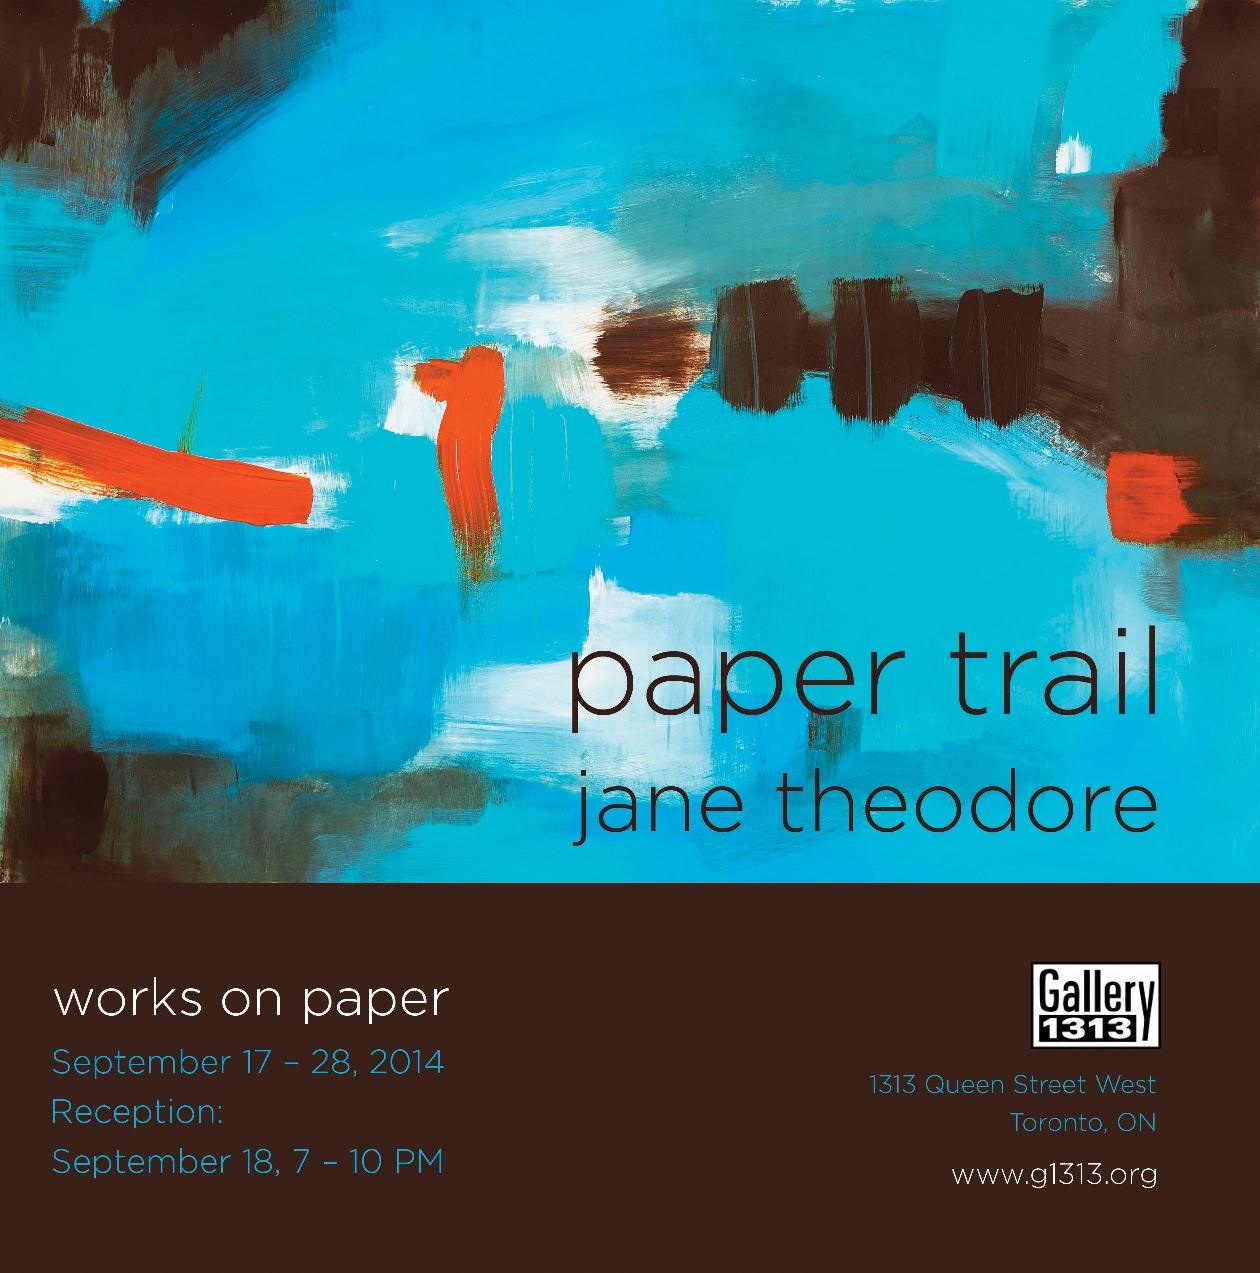 PAPER TRAIL by Jane Theodore, September 17-28